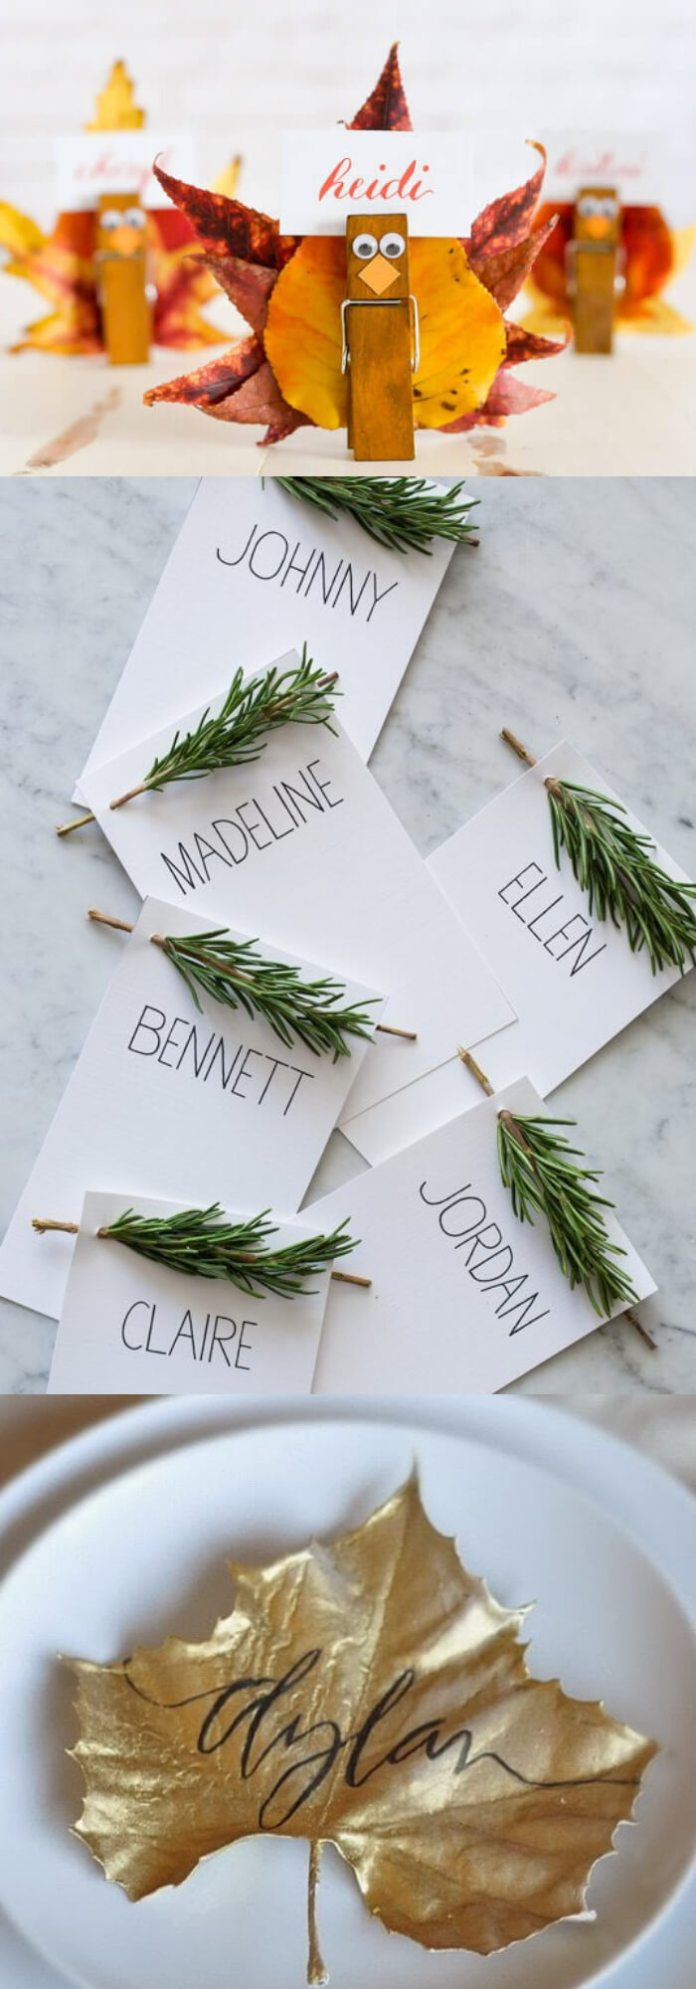 Place card for thanksgiving   Thanksgiving Gifts Kids Can Make - FarmFoodFamily.com